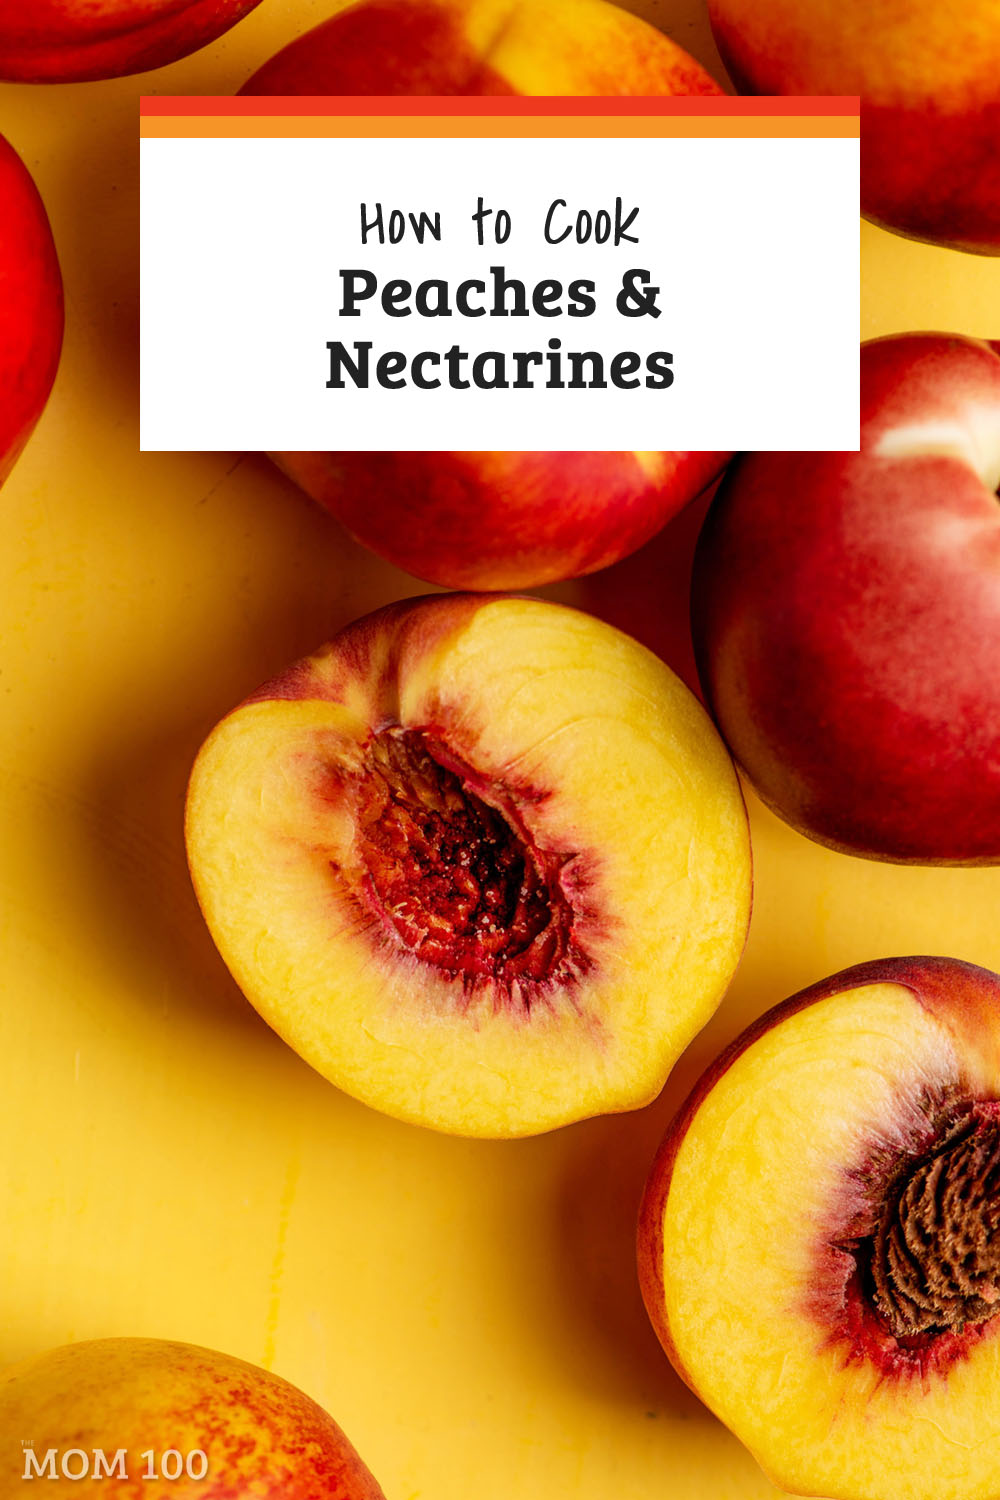 How to Cook Peaches and Nectarines: All your questions answered about how to buy, store, prepare, and cook peaches and nectarines.